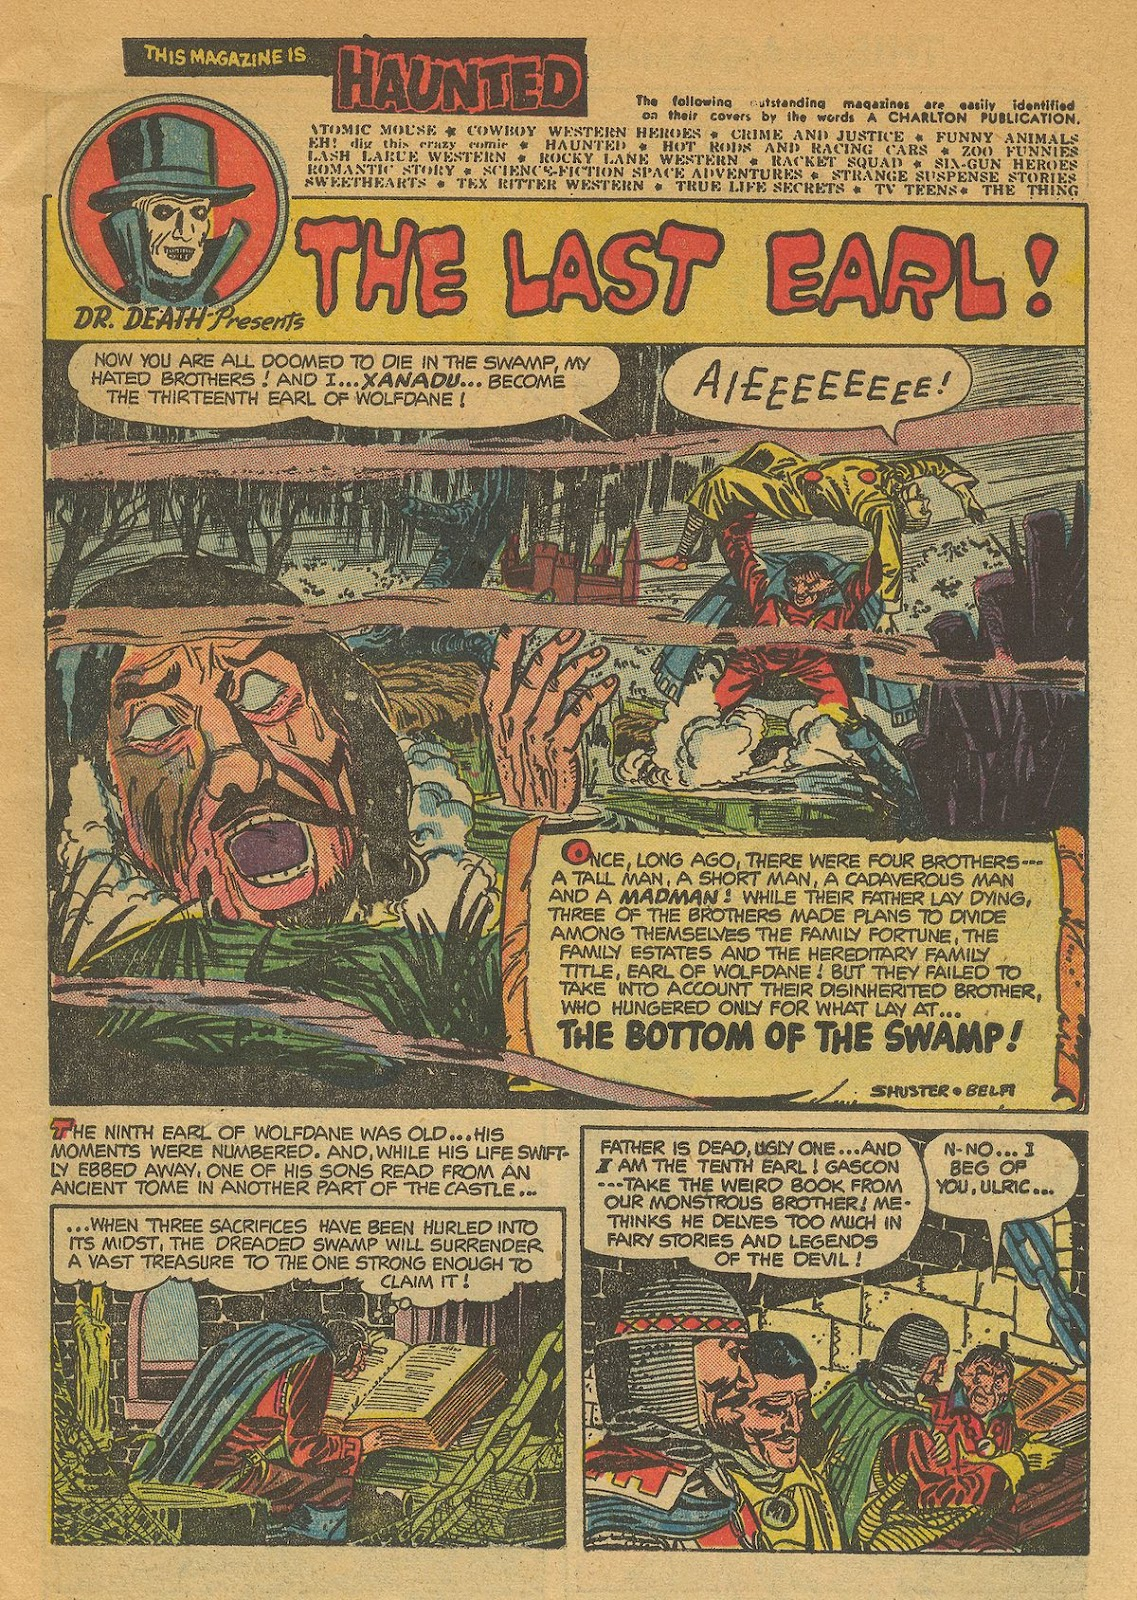 Read online This Magazine Is Haunted comic -  Issue #18 - 3